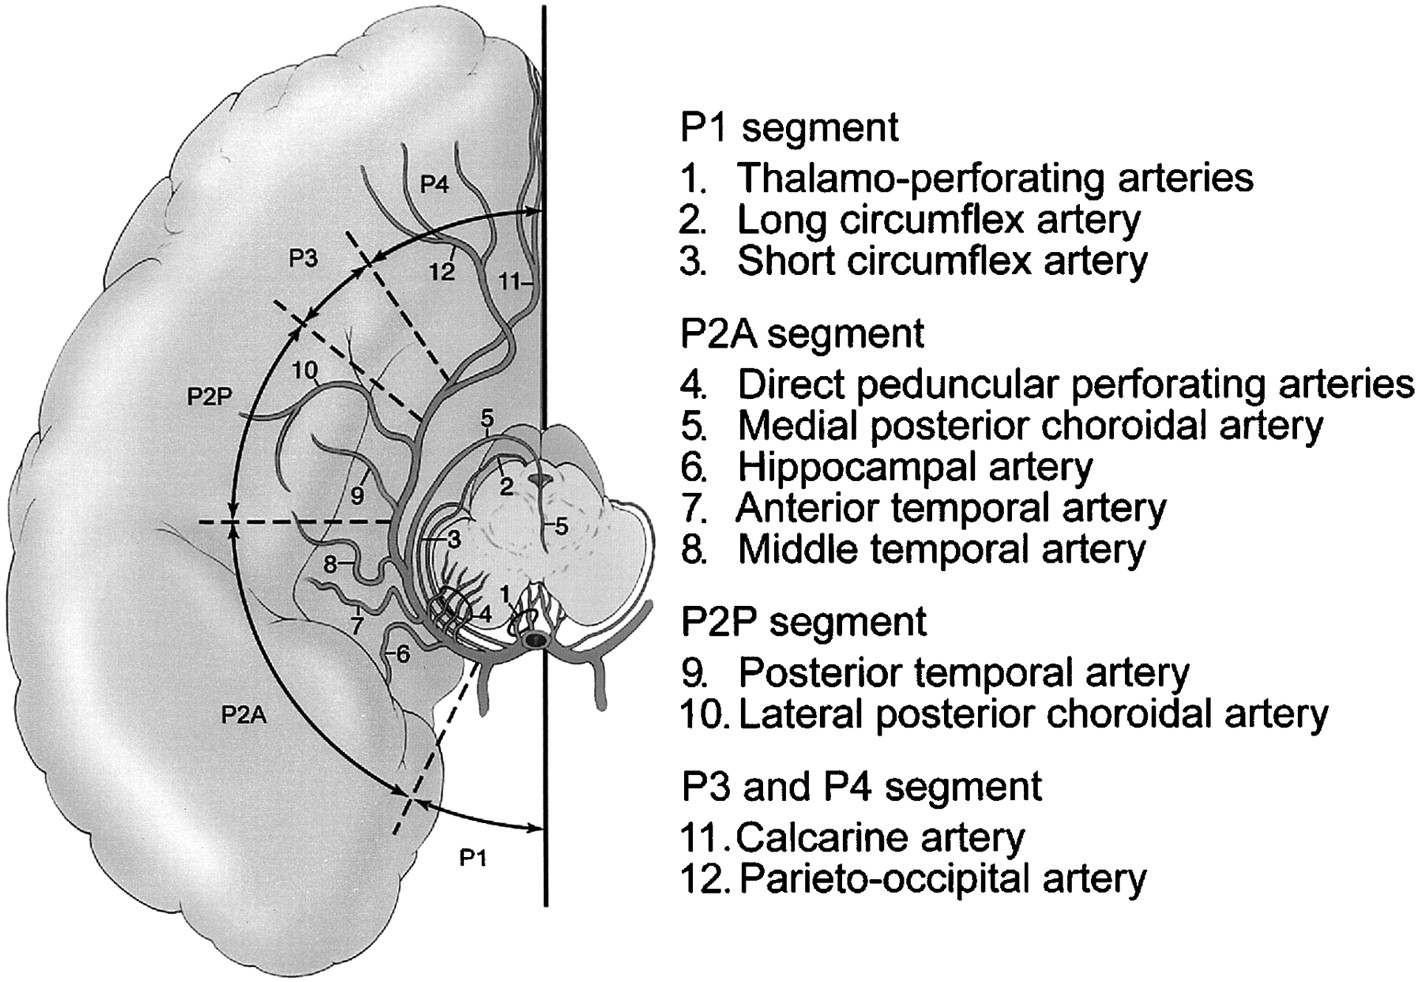 Aneurysms Of The Posterior Cerebral Artery Classification And